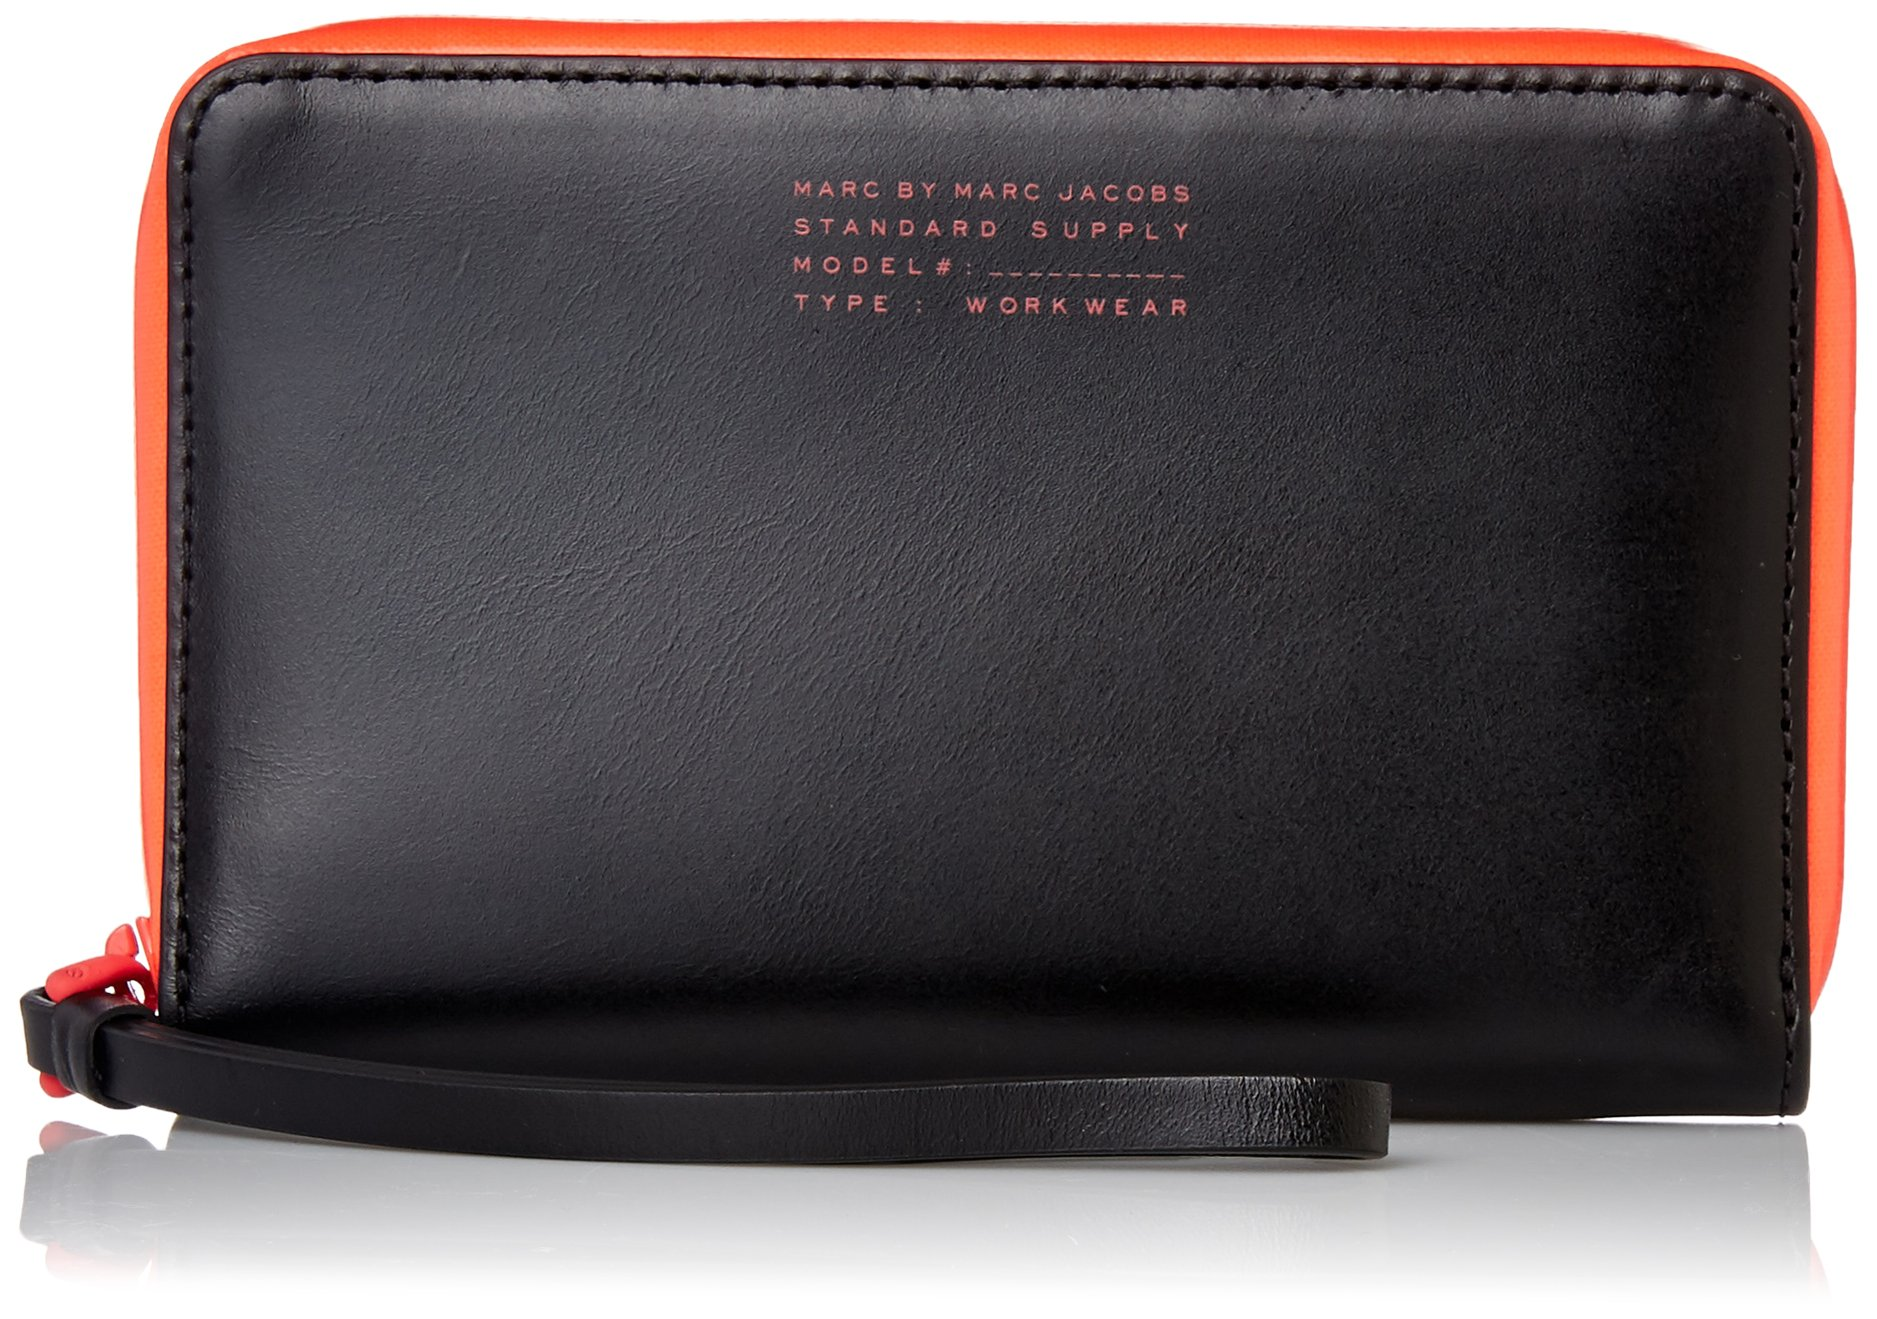 Marc by Marc Jacobs Sophisticato Duo Wingman Wristlet, Black, One Size by Marc by Marc Jacobs